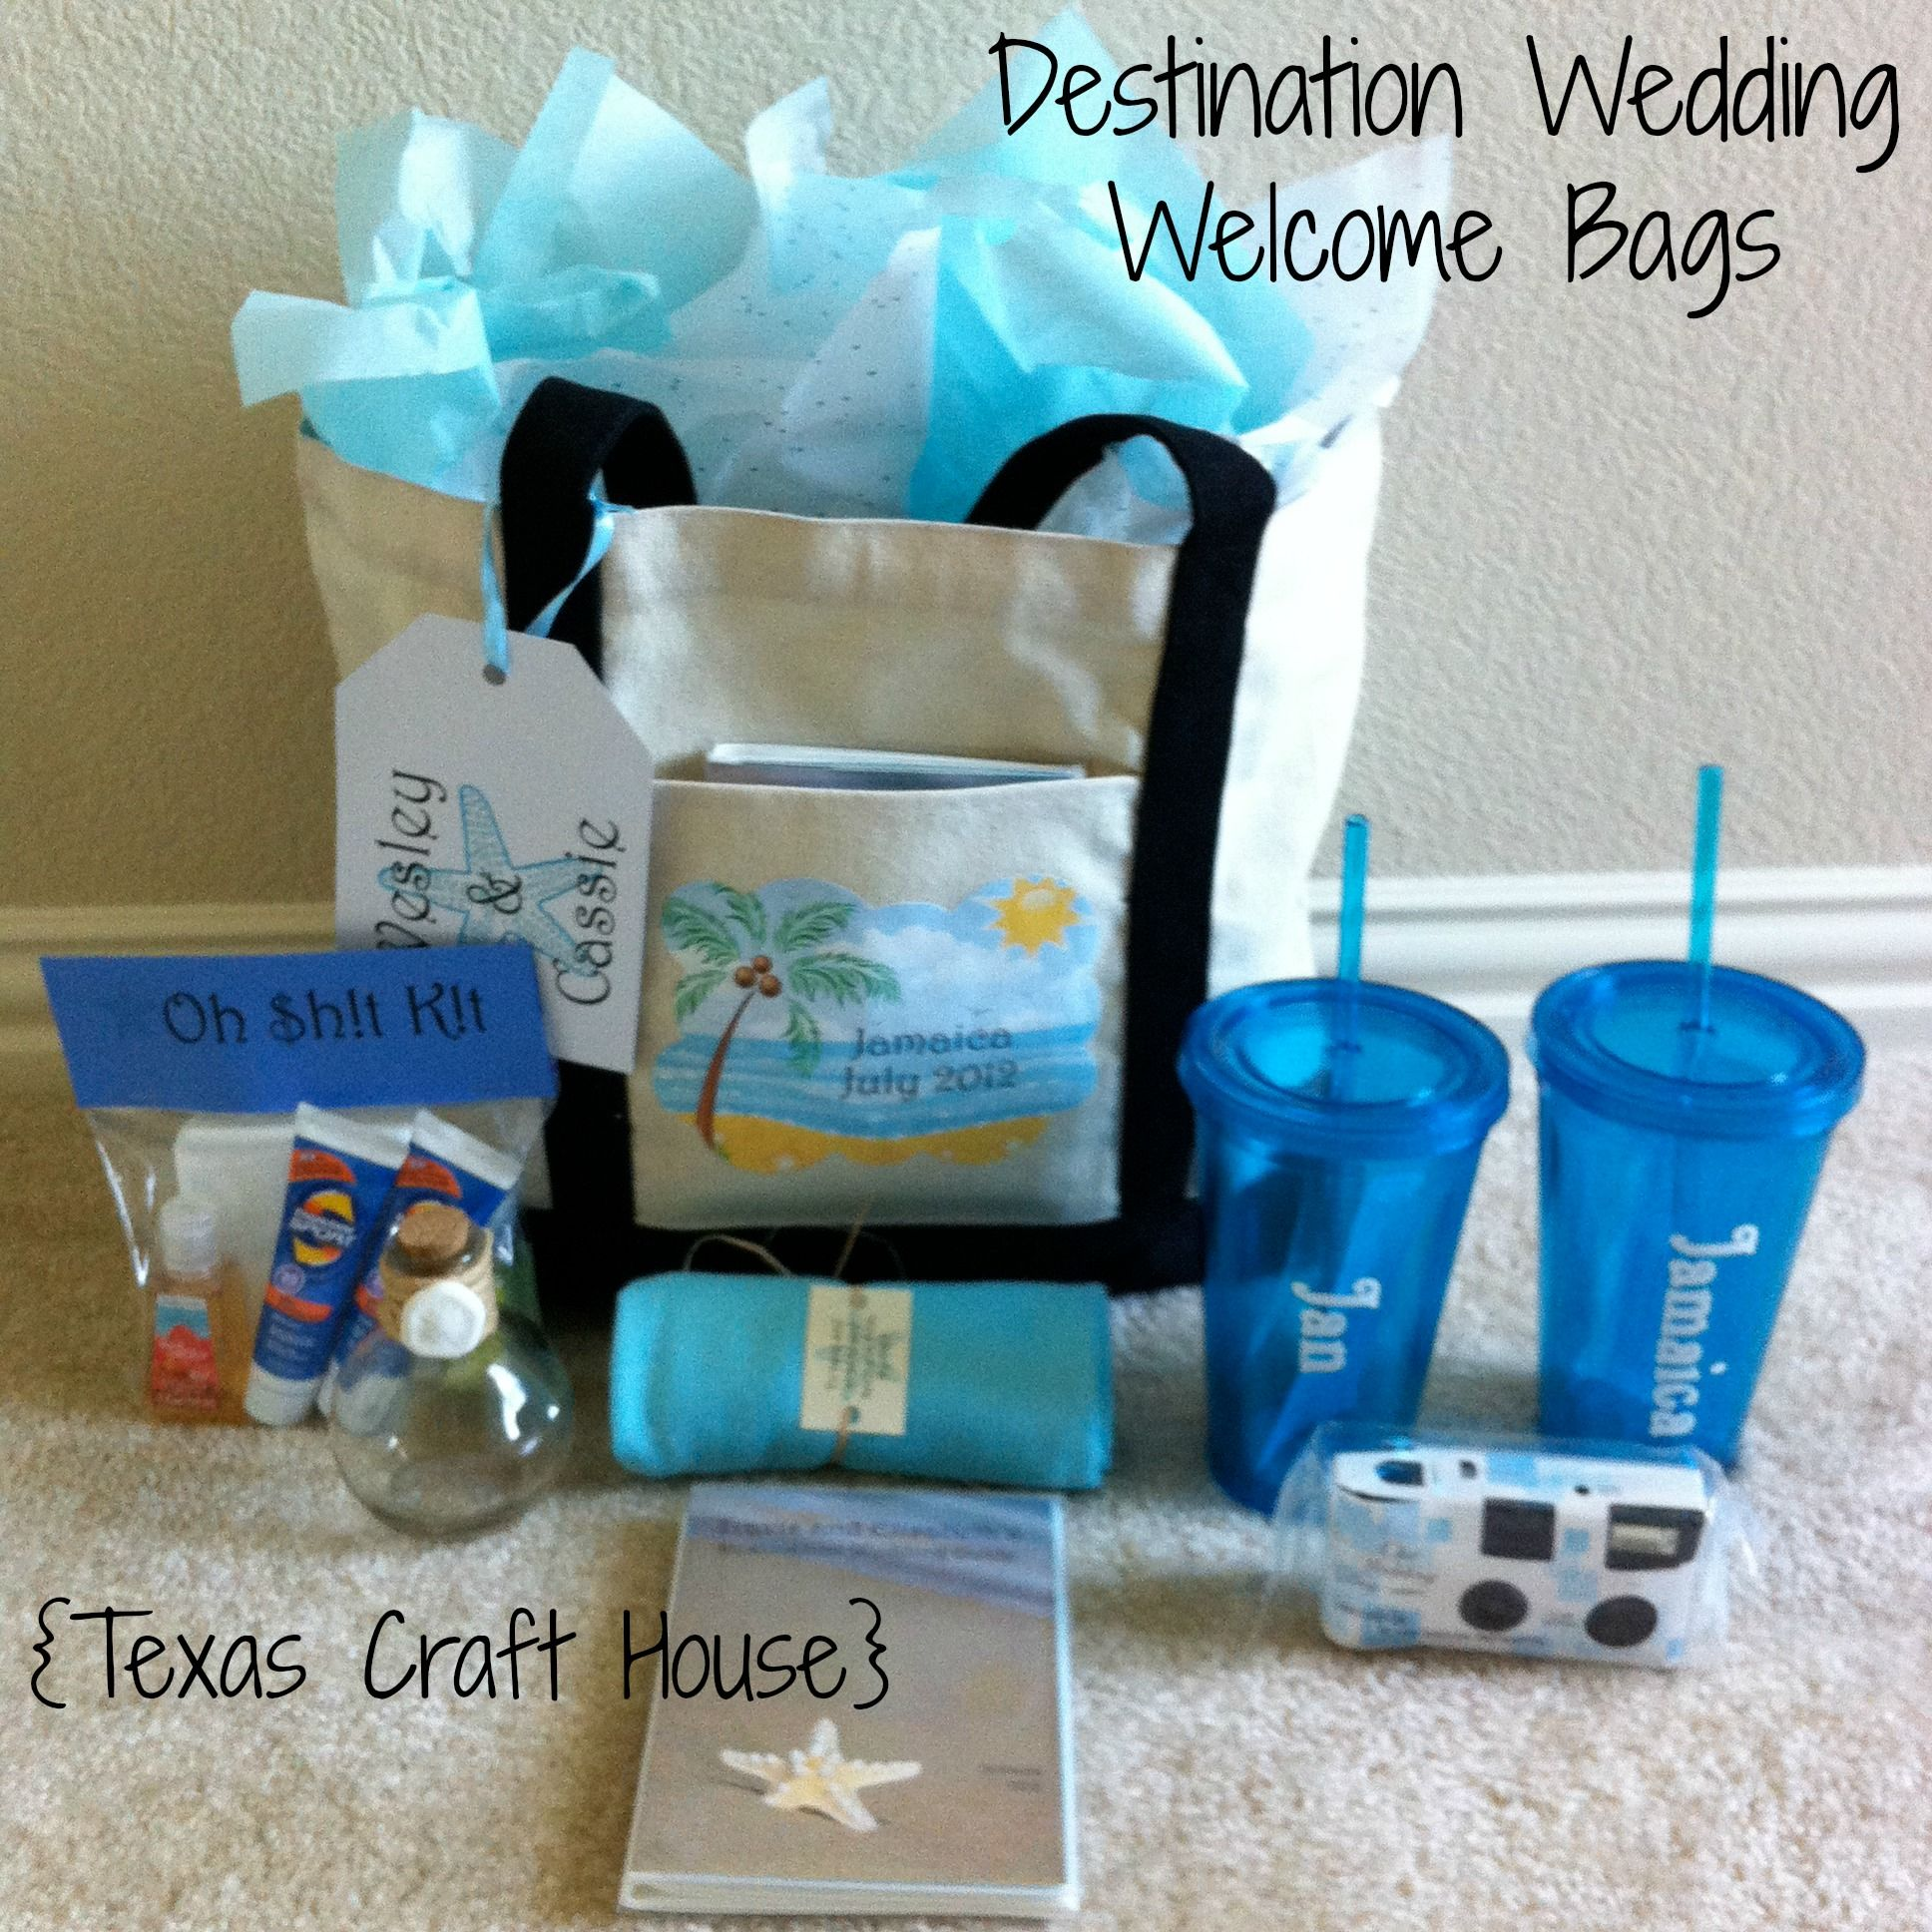 Craft Wedding Gifts: I Love This Blog. What A Great Way To Get Me Started And